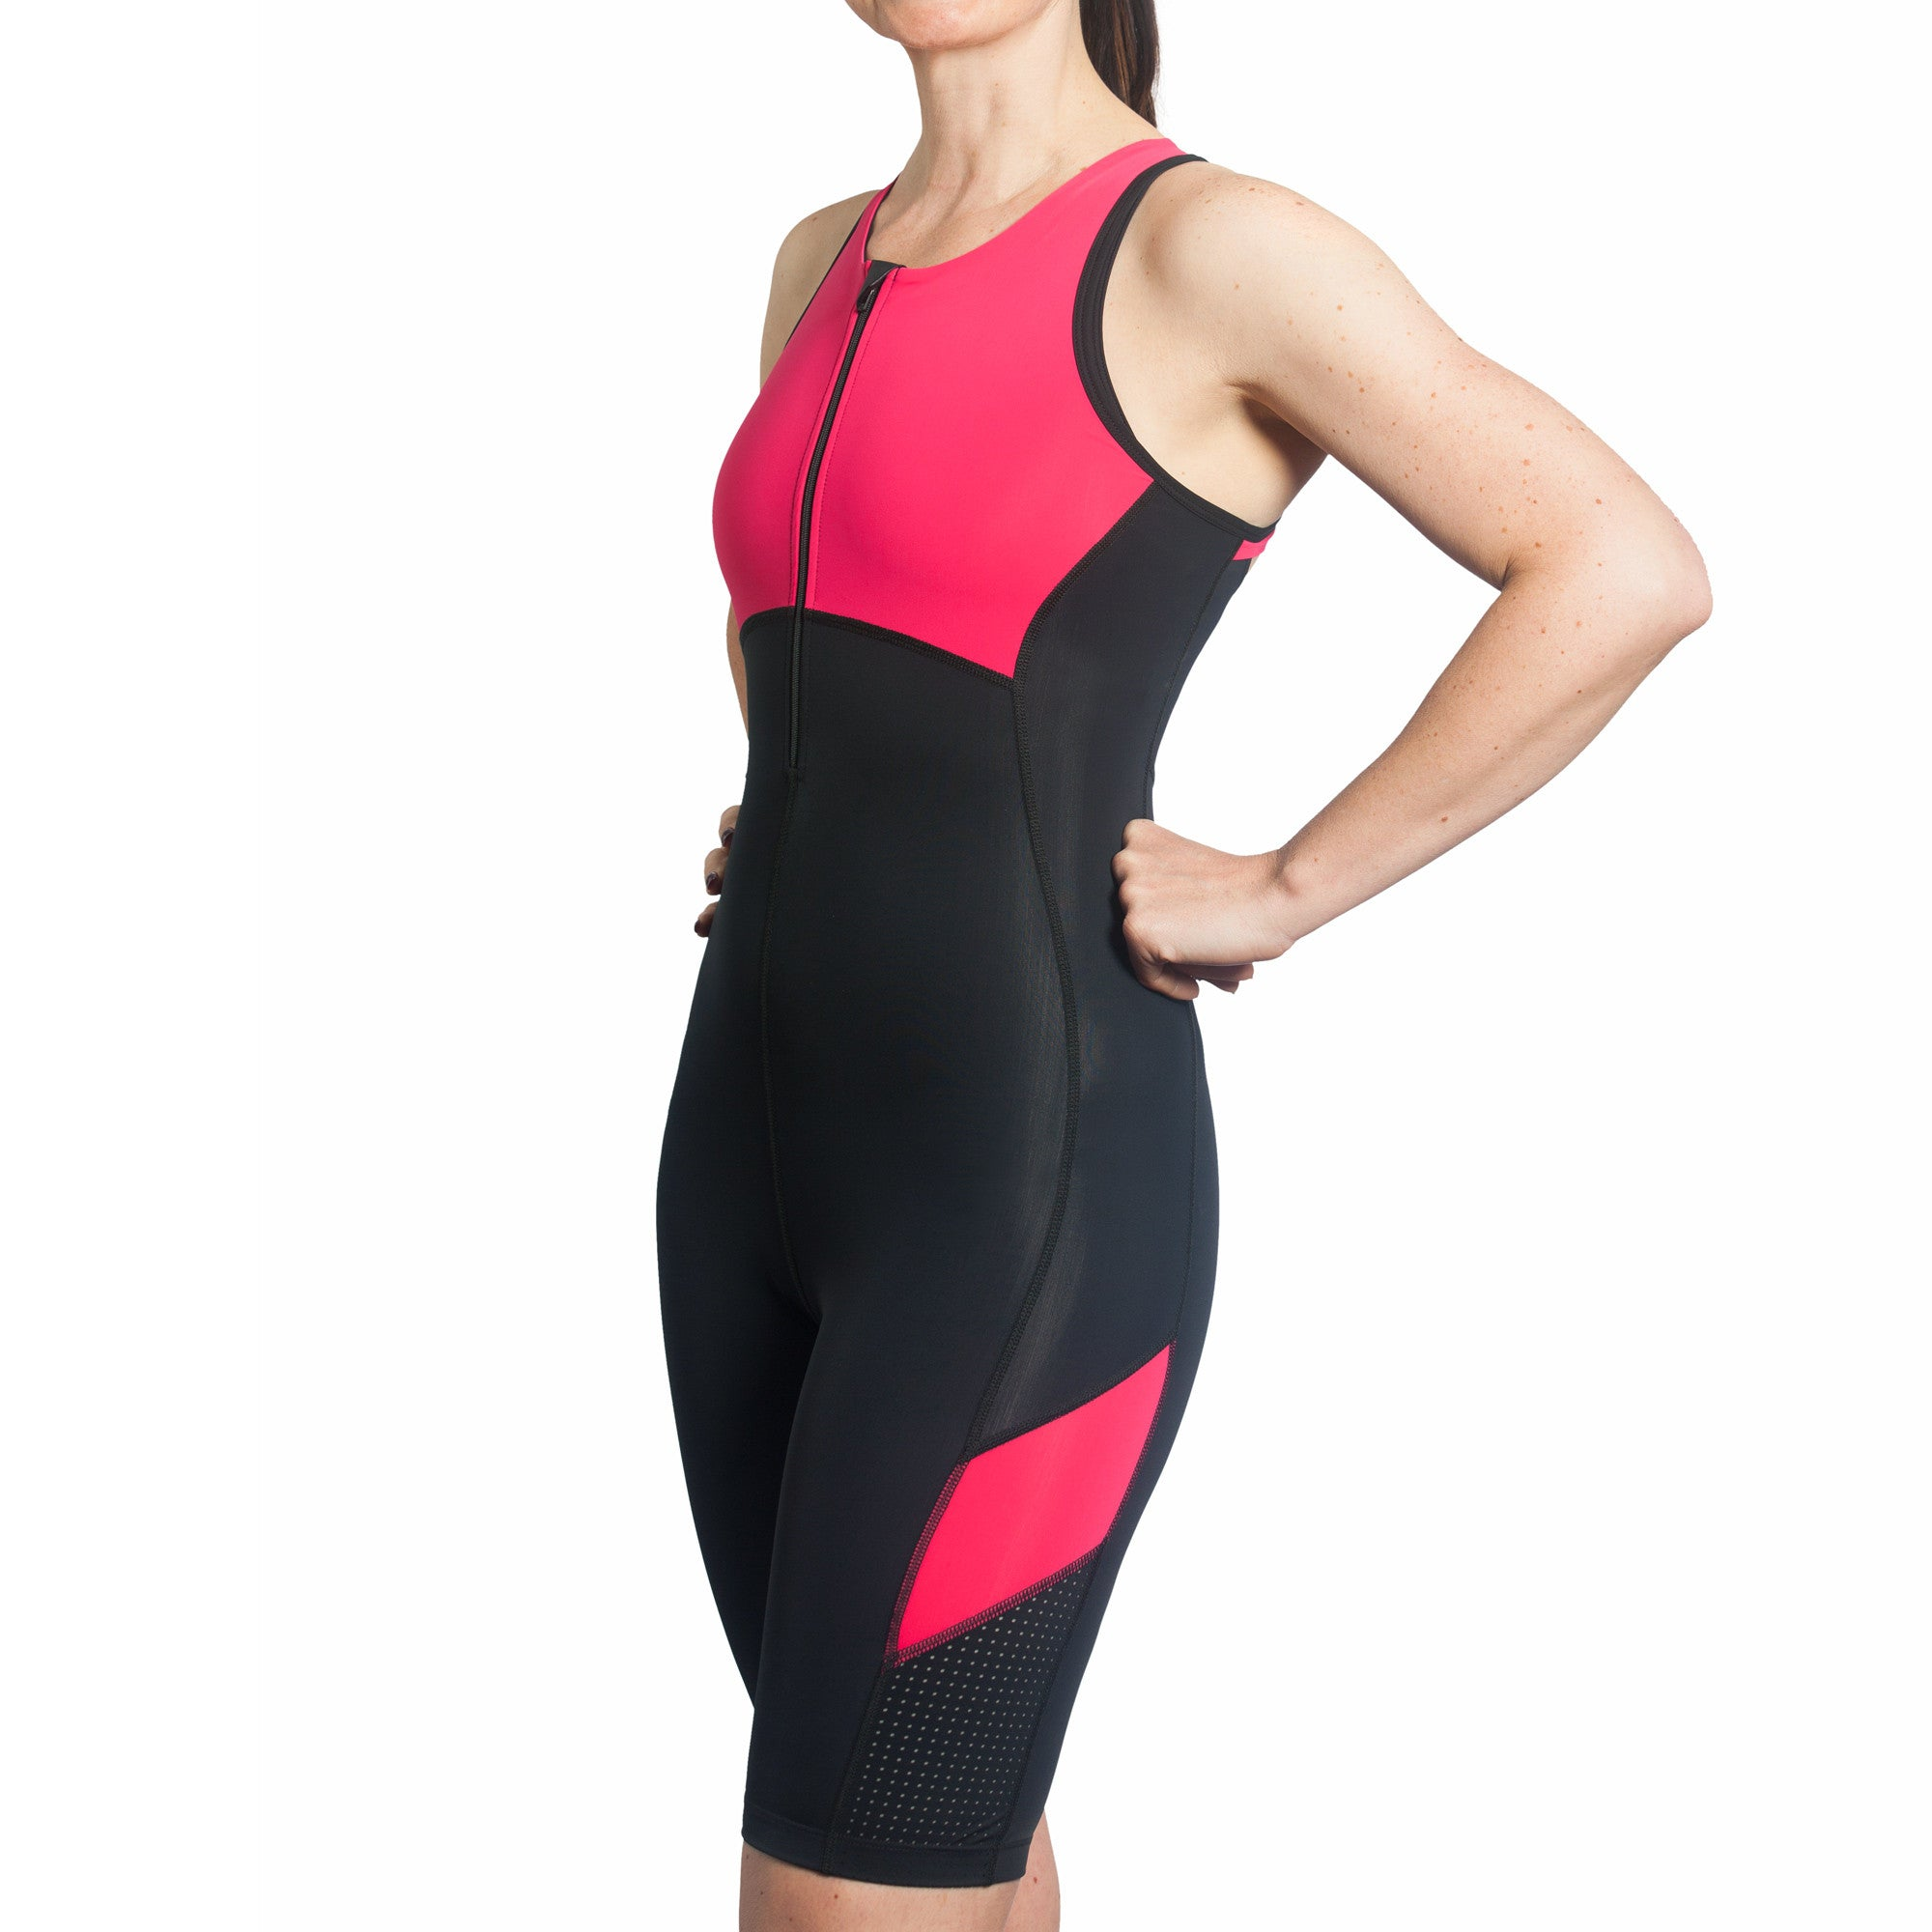 Spice Trisuit with Support Crop in Paloma Pink - M